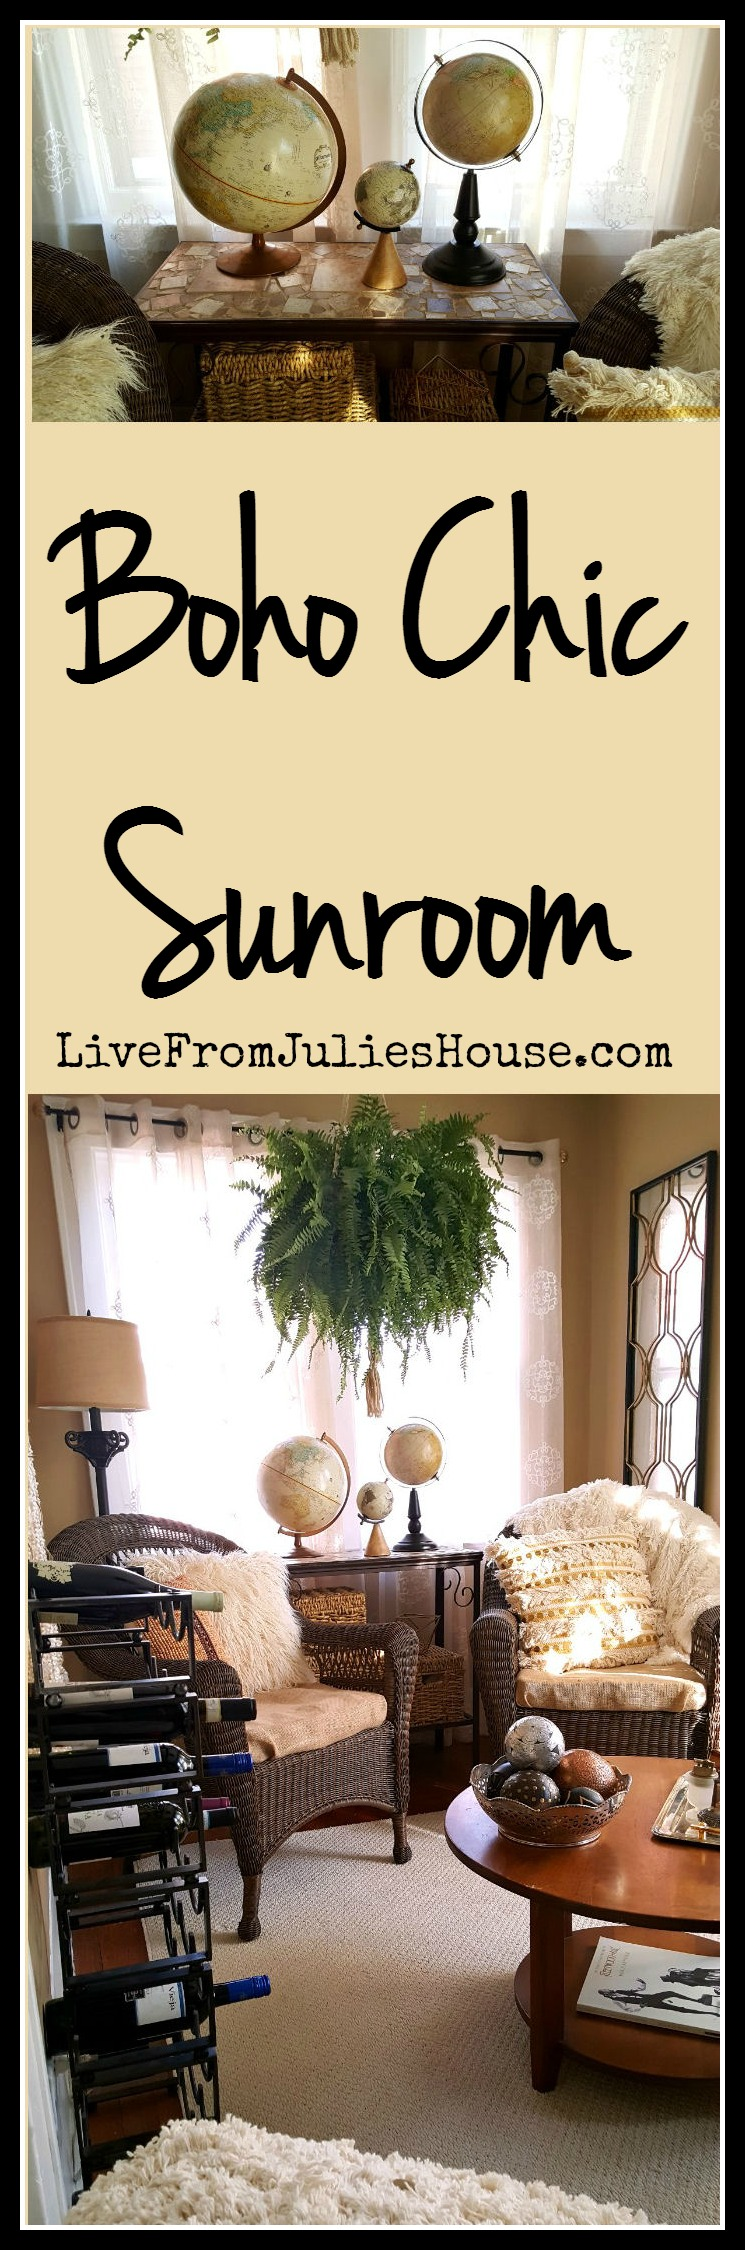 Boho chic sunroom - Find out how I transformed an awkward little room in my house into a boho chic sunroom with loads of personality and style - without breaking the bank.